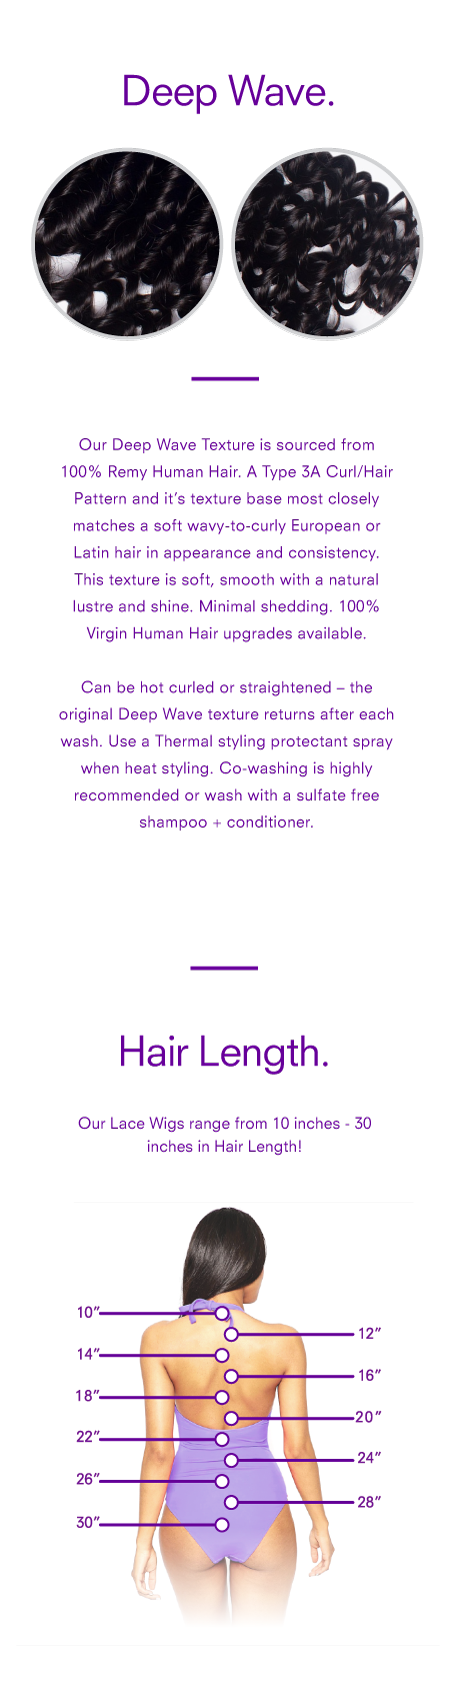 <p>Our <strong>Deep Wave Texture Lace Wig</strong> is sourced from 100% Remy Human Hair. A <em>Type 3A Curl/Hair Pattern</em> and it's texture base most closely matches a soft wavy-to-curly European or Latin hair in appearance and consistency. This texture is soft, smooth with a natural lustre and shine. Minimal shedding. <em>100% Virgin Human Hair upgrades available.</em></p> <p>Can be hot curled or straightened – the original Deep Wave texture returns after each wash. Use a Thermal styling protectant spray when heat styling. Co-washing is highly recommended or wash with a sulfate free shampoo + conditioner.</p>